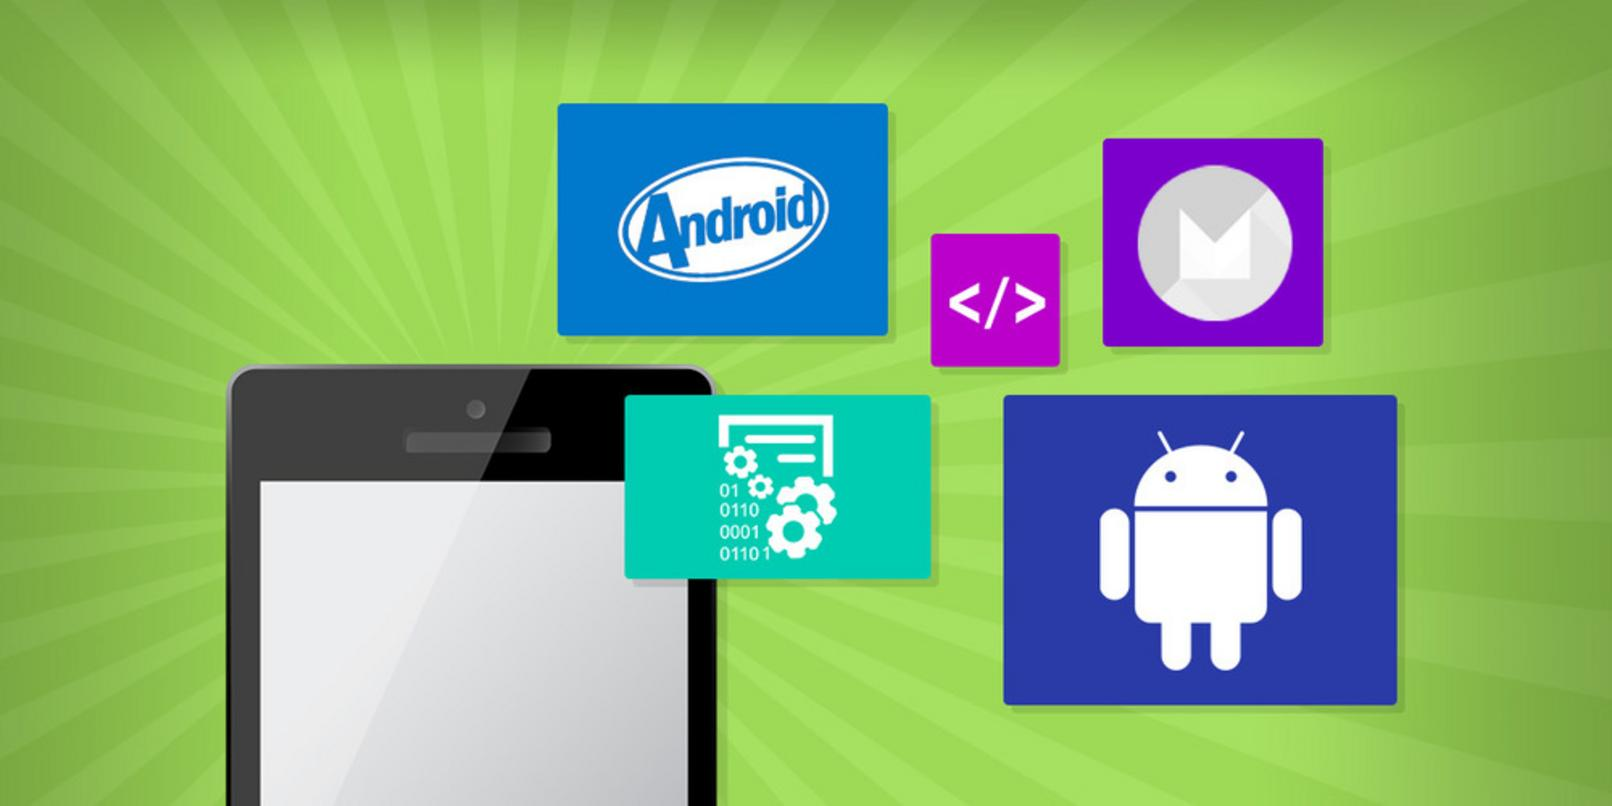 This comprehensive Android development bundle teaches everything you need to build stunning apps